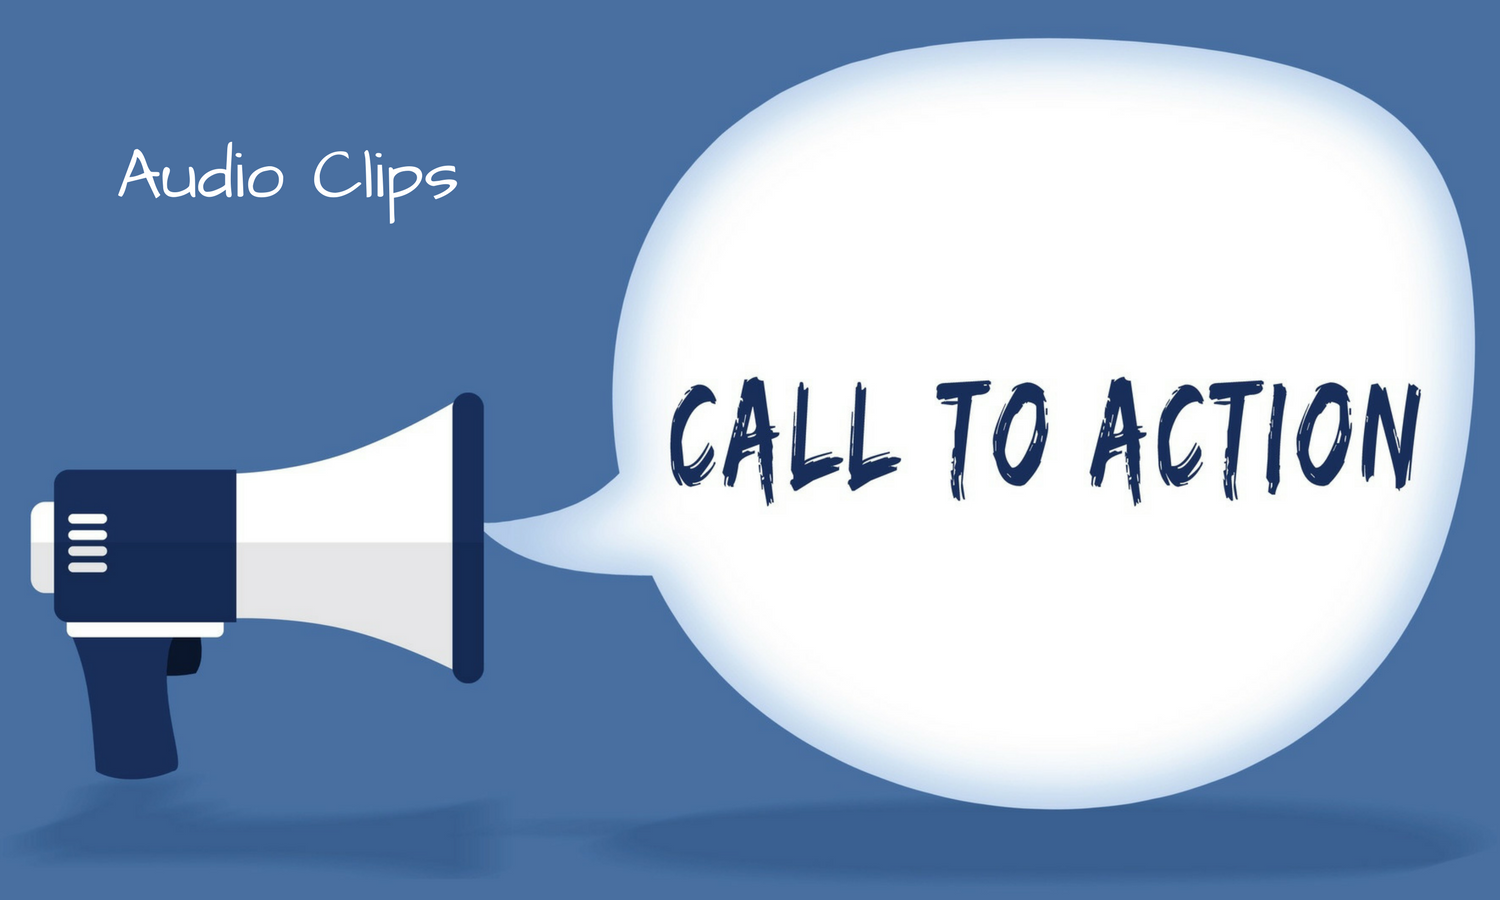 Big Box Content Audio Clip Calls To Action